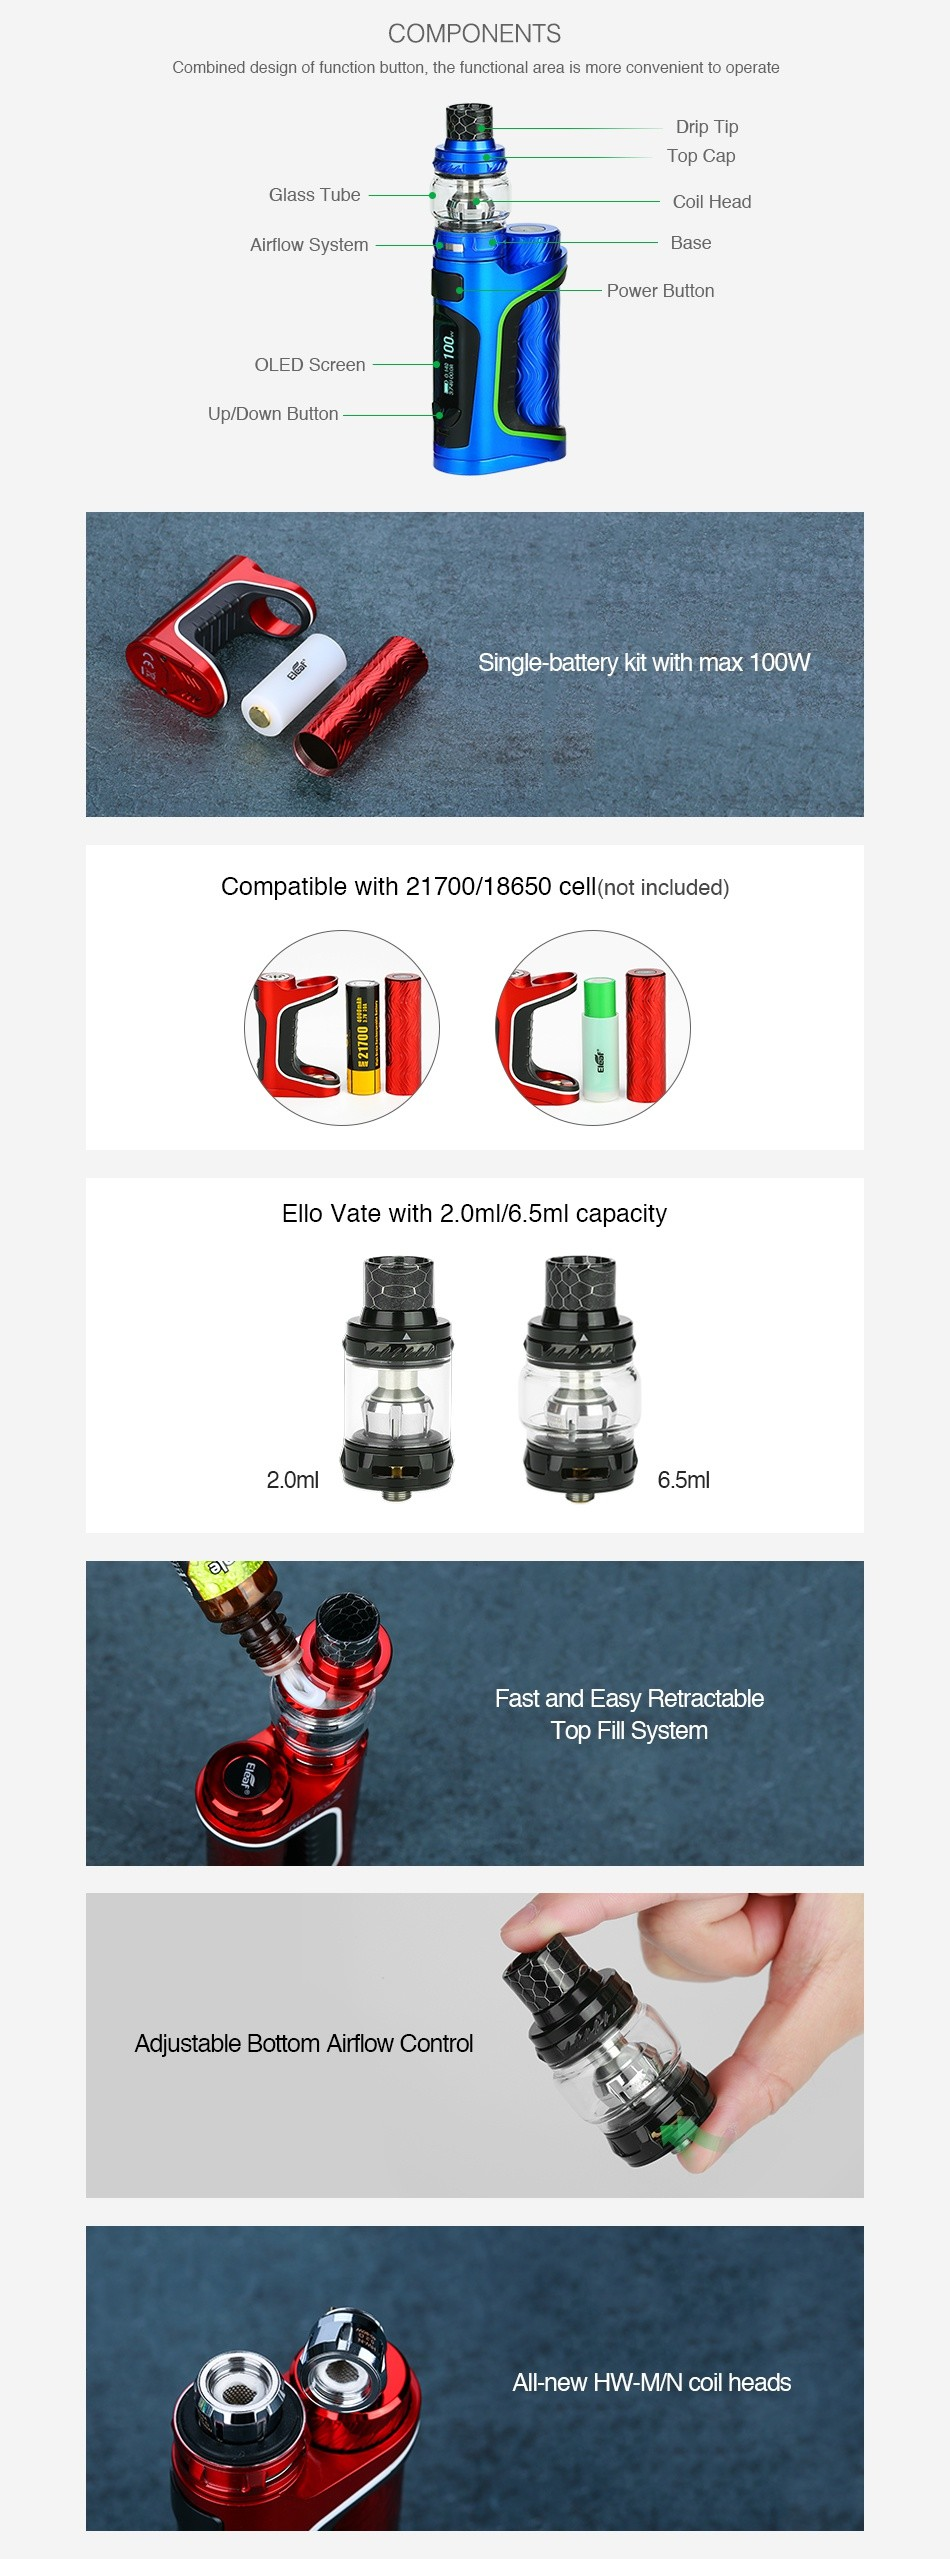 Eleaf iStick Pico S 100W TC Kit COMPONENTS Combined design of function button  the functional area is more convenient to operate Drip I ip Ss Coil I lead Airflow Systcm Power Button Ol FD Scrccn Up Down Bullon Single battery kit with max 100W Compatible with 21700 18650 cell not included  Ello vate with 2 0m 6 5ml capacity 2 0ml 6 5ml Fast and Easy Retractable Iop Fll System Adjustable Bottom Airflow Control All new HW mn coil heads